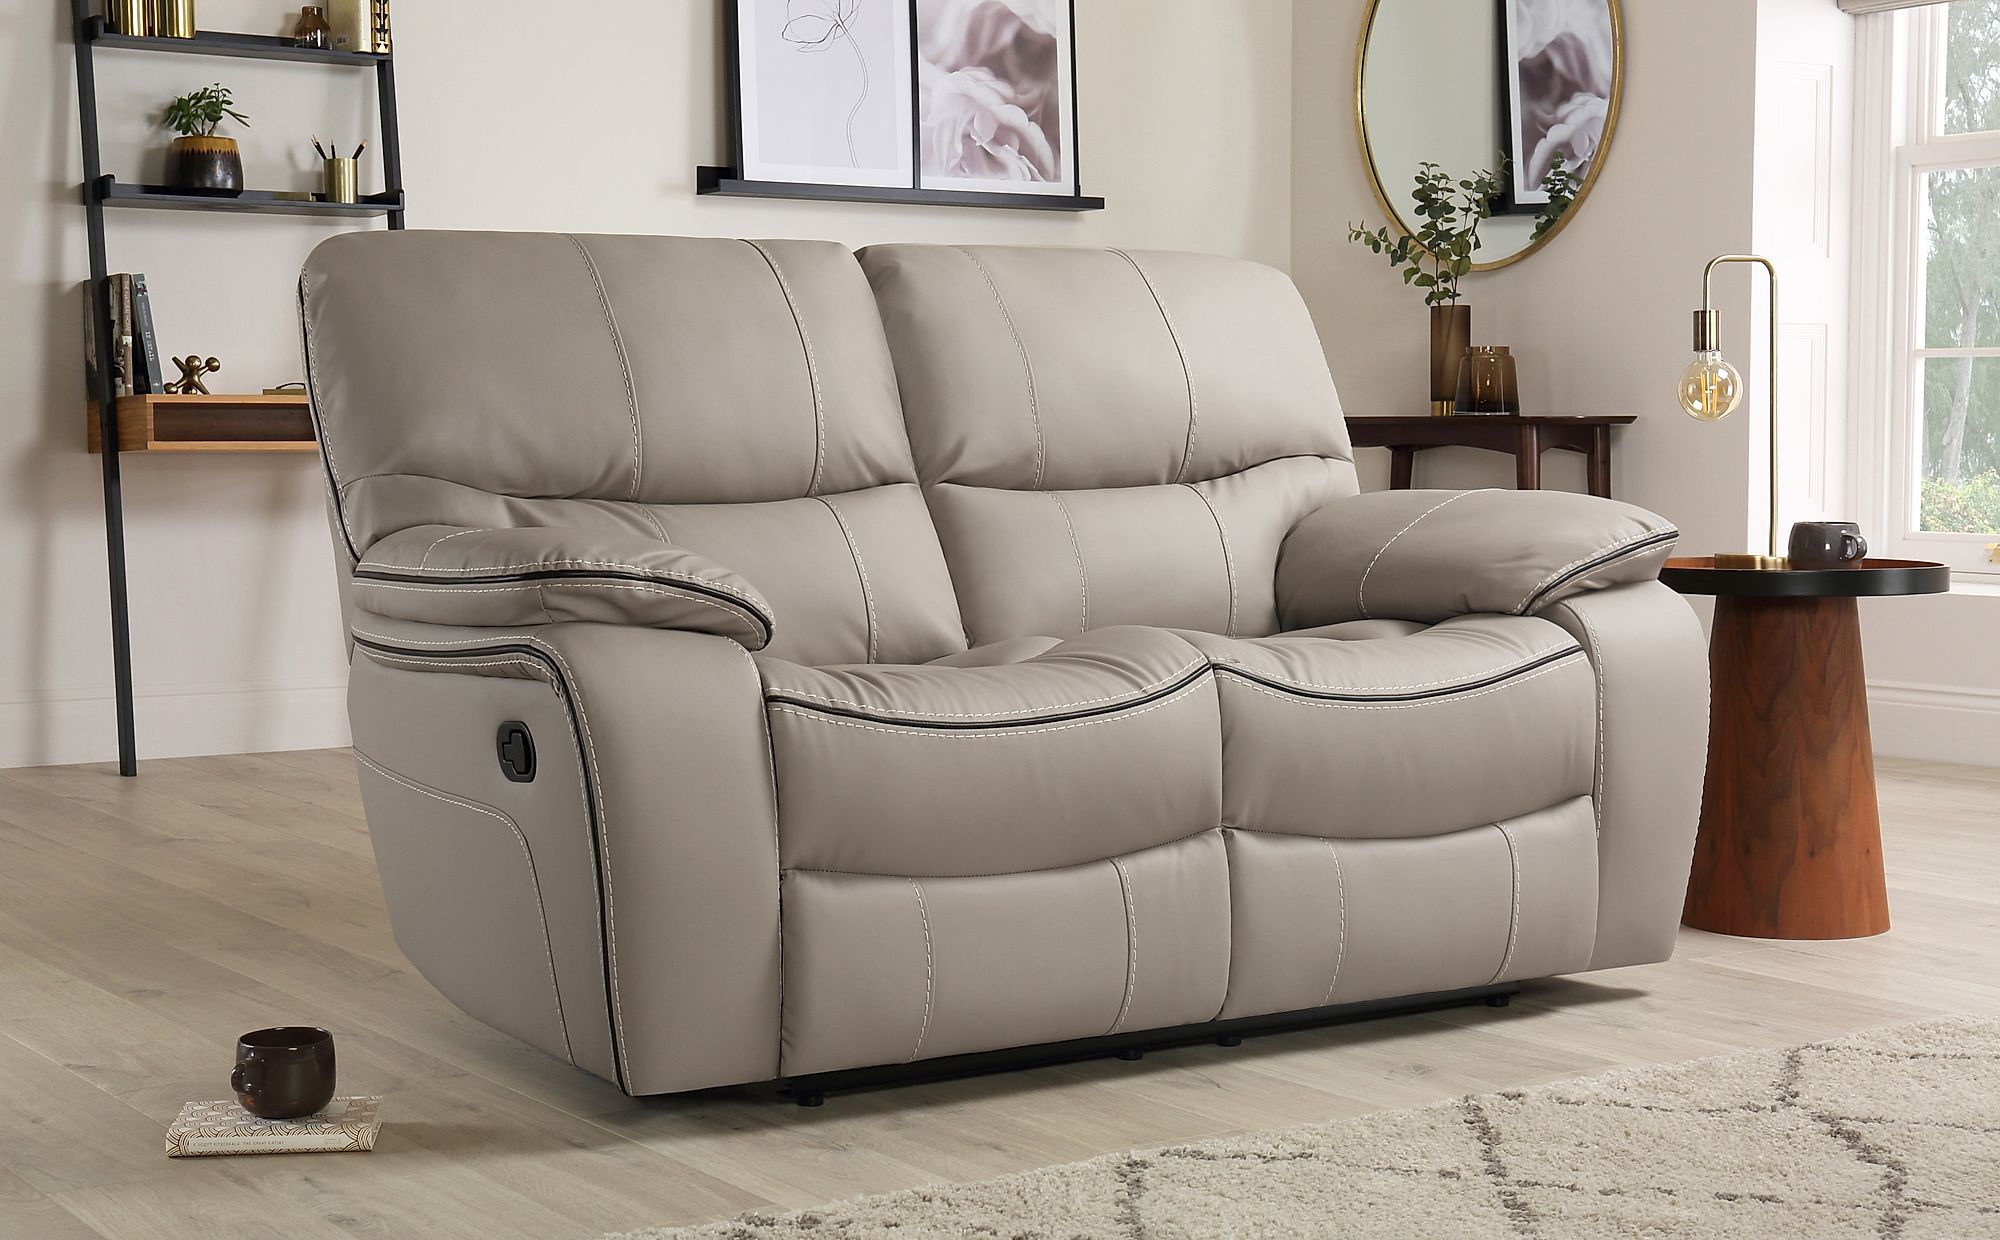 Beaumont Taupe Leather 2 Seater Recliner Sofa | Furniture ...